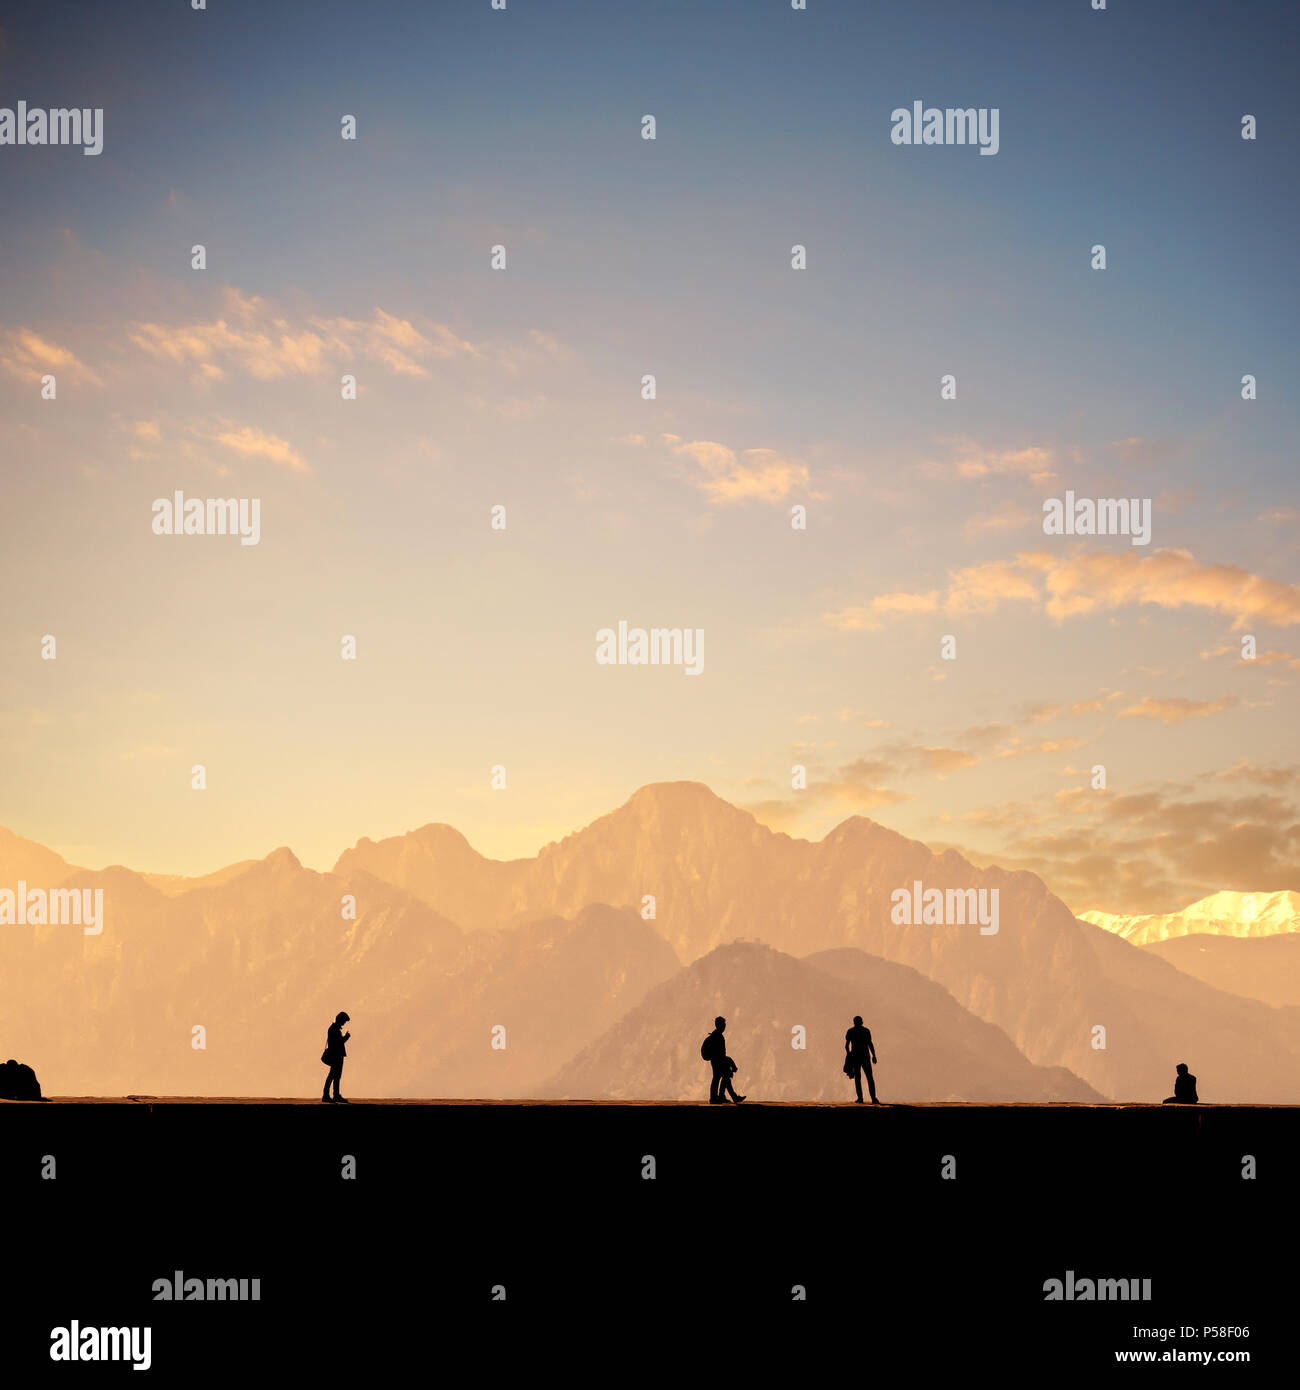 Silhouetted people relaxing in Antalya harbor over sunset sky and high mountains - Stock Image